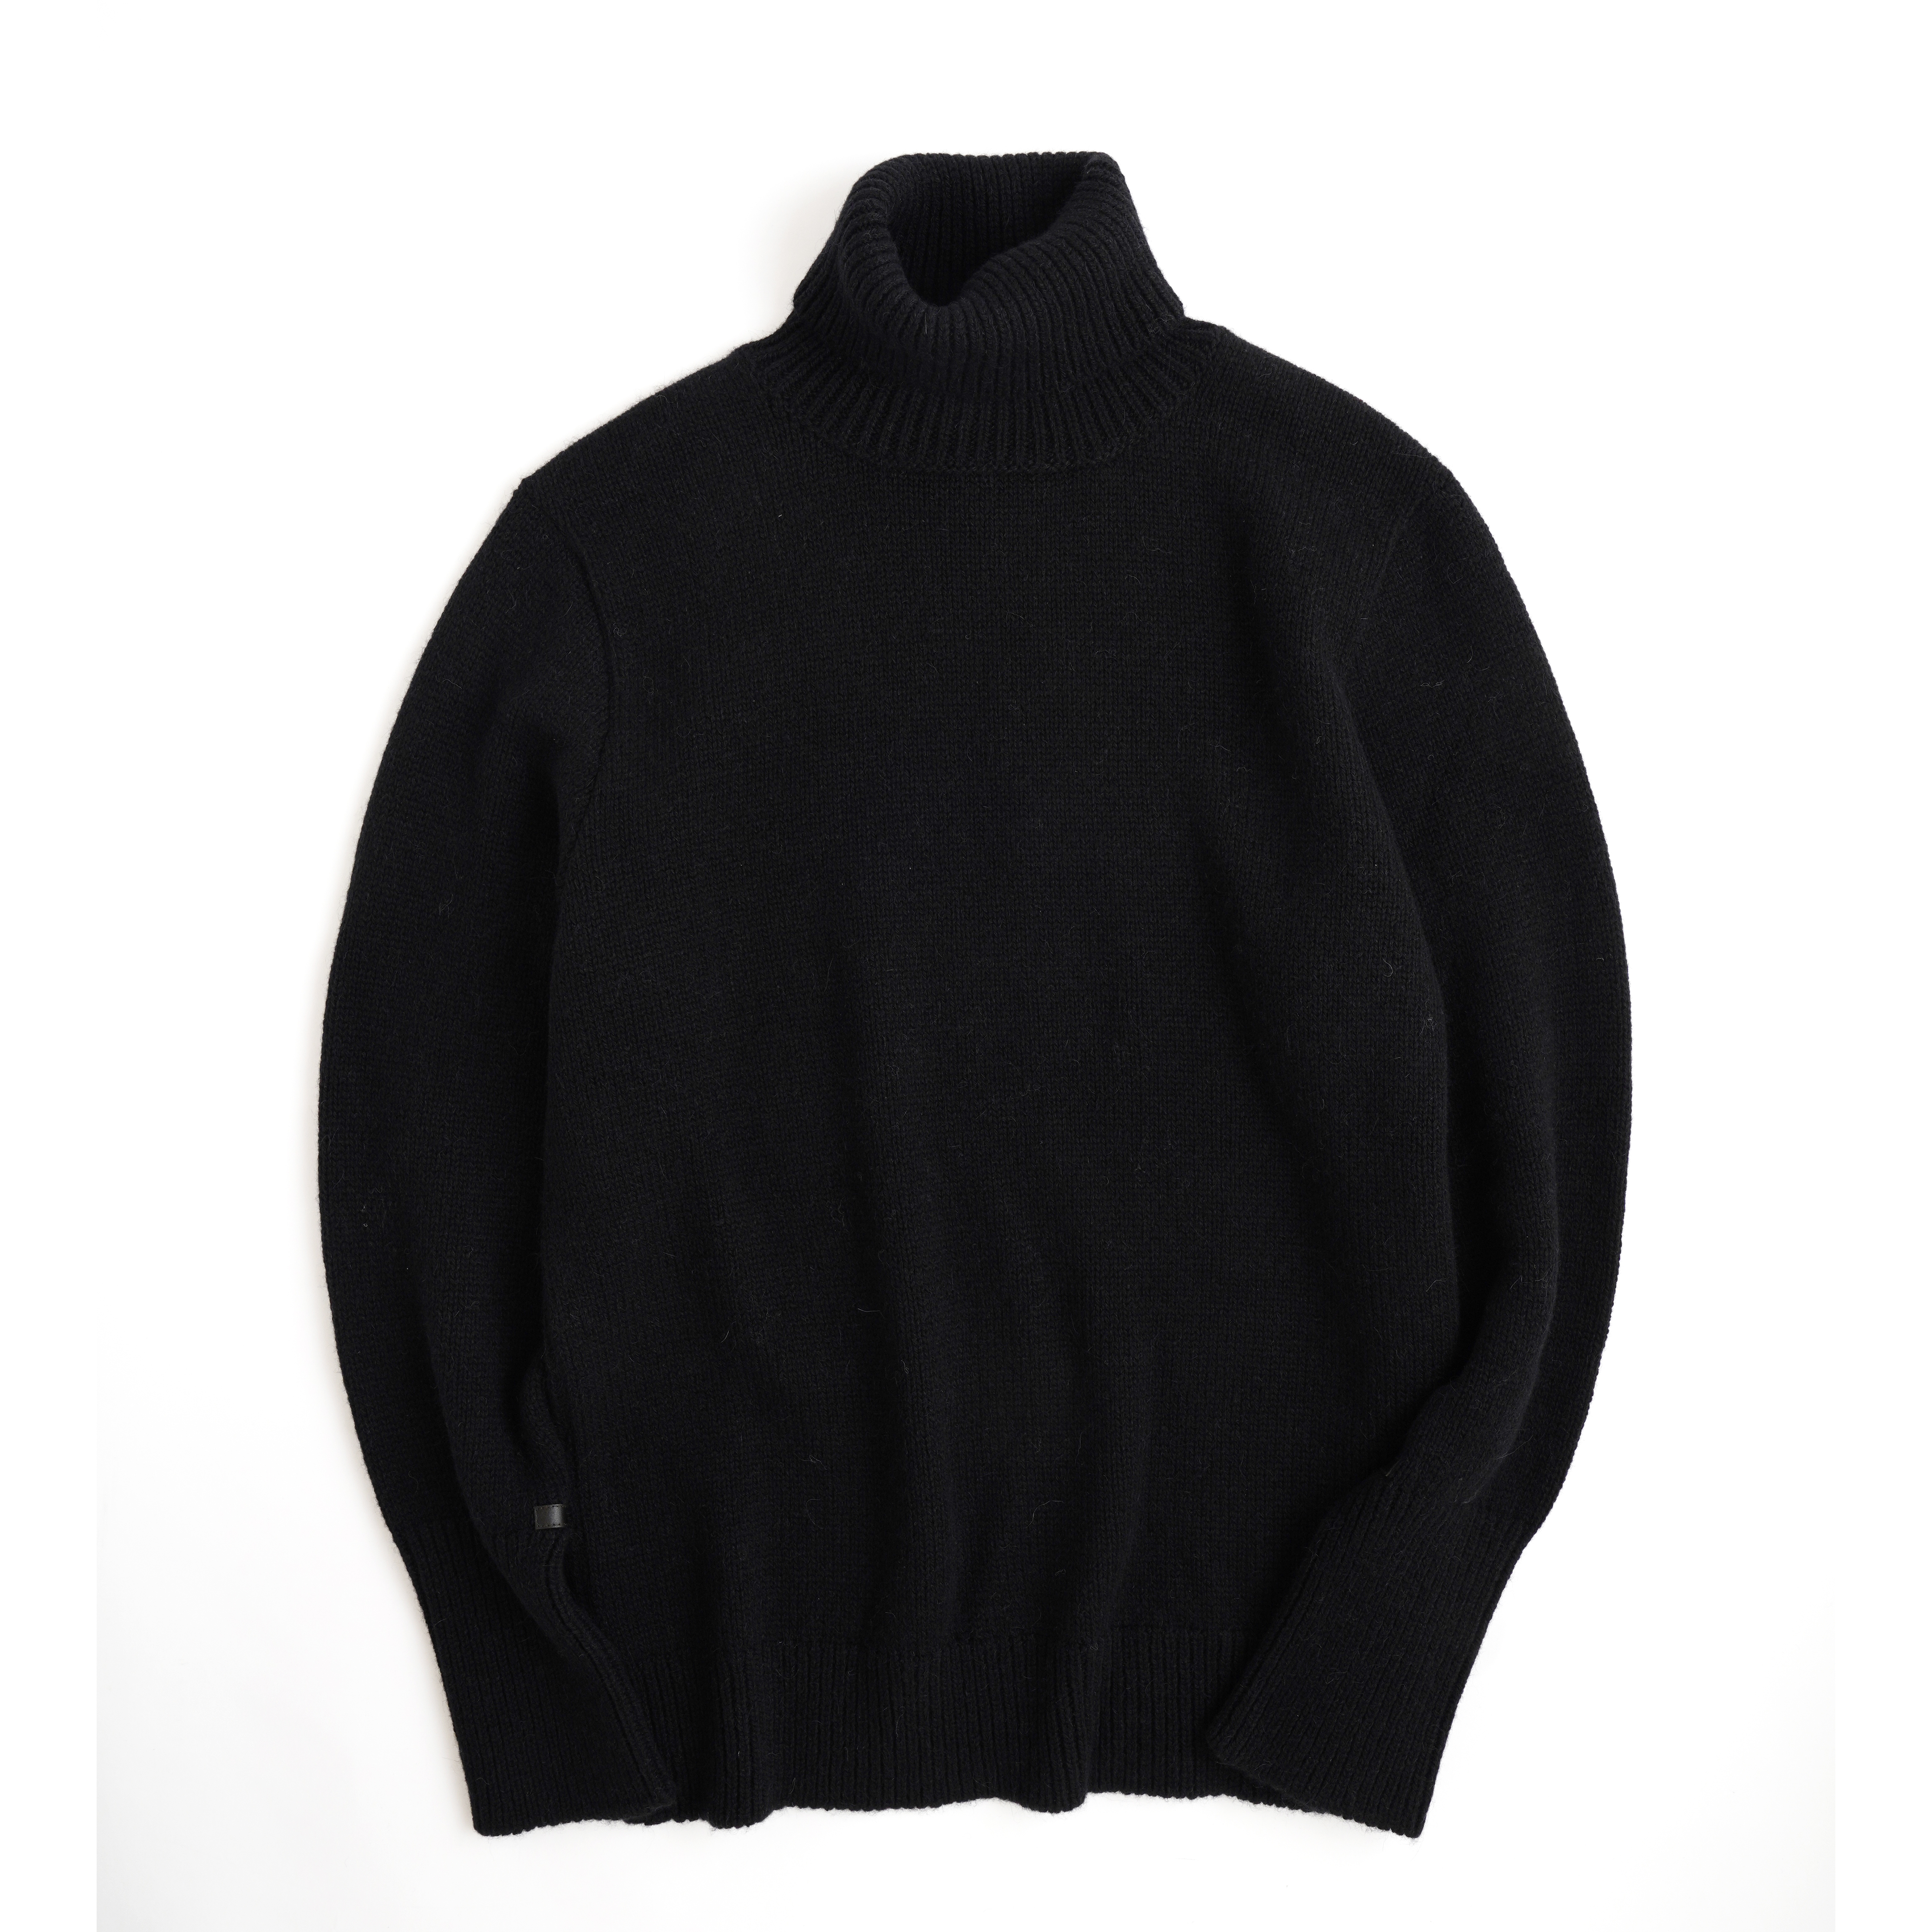 THE INOUE BROTHERS/Turtle Neck Sweater/Black